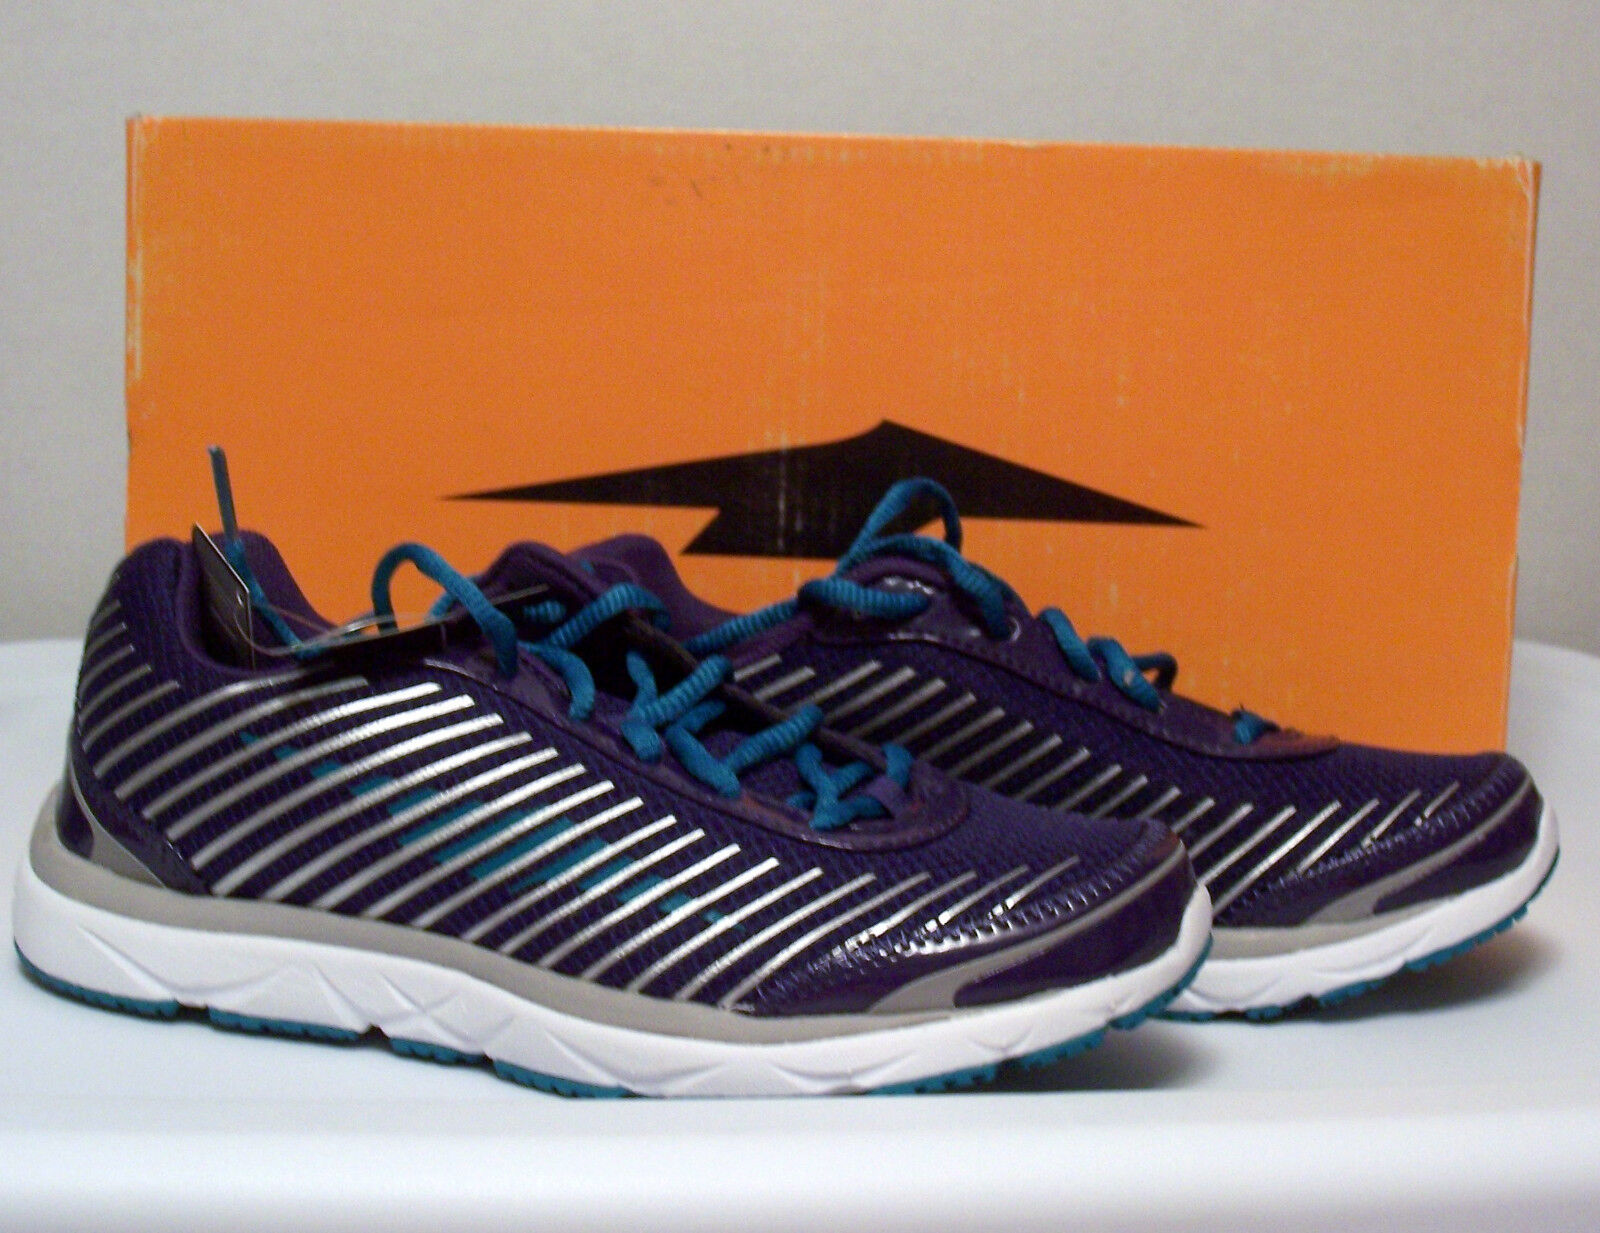 NIB AVIA Women's Athletic Running shoes Purple Teal Sizes 6, 6.5